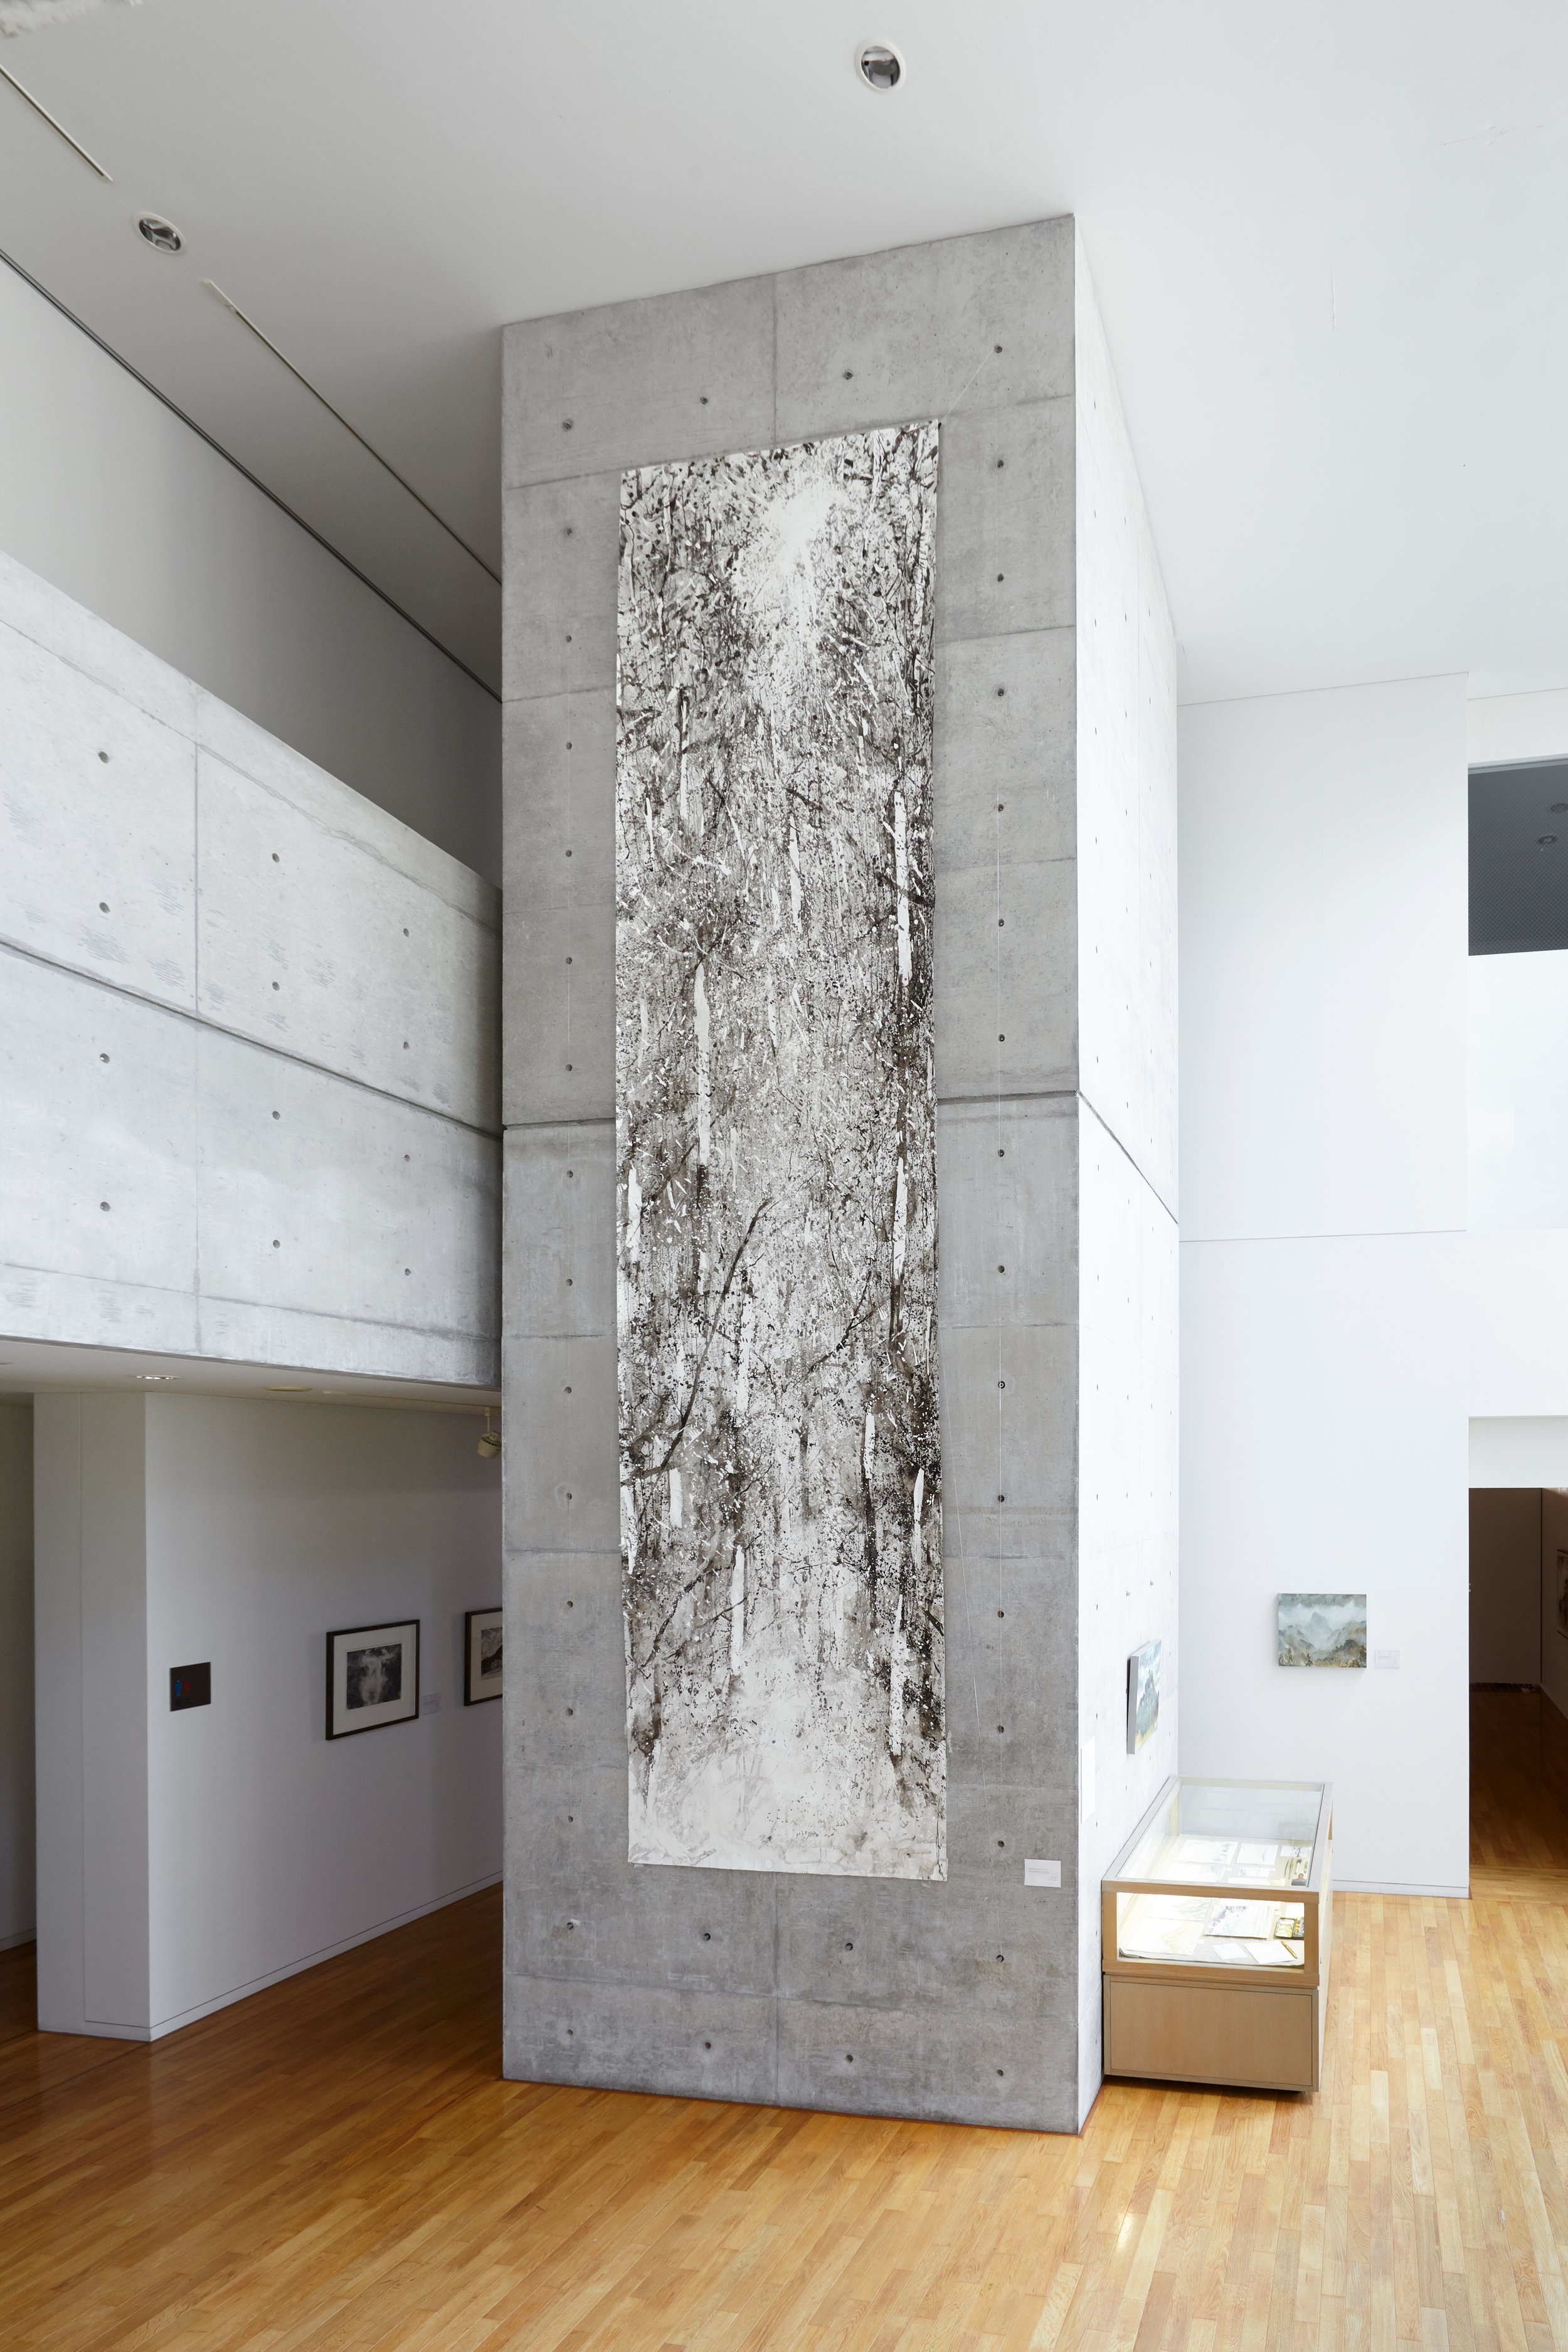 A view of the big concrete wall which inspired the 5.6 meter drawing of the forest.